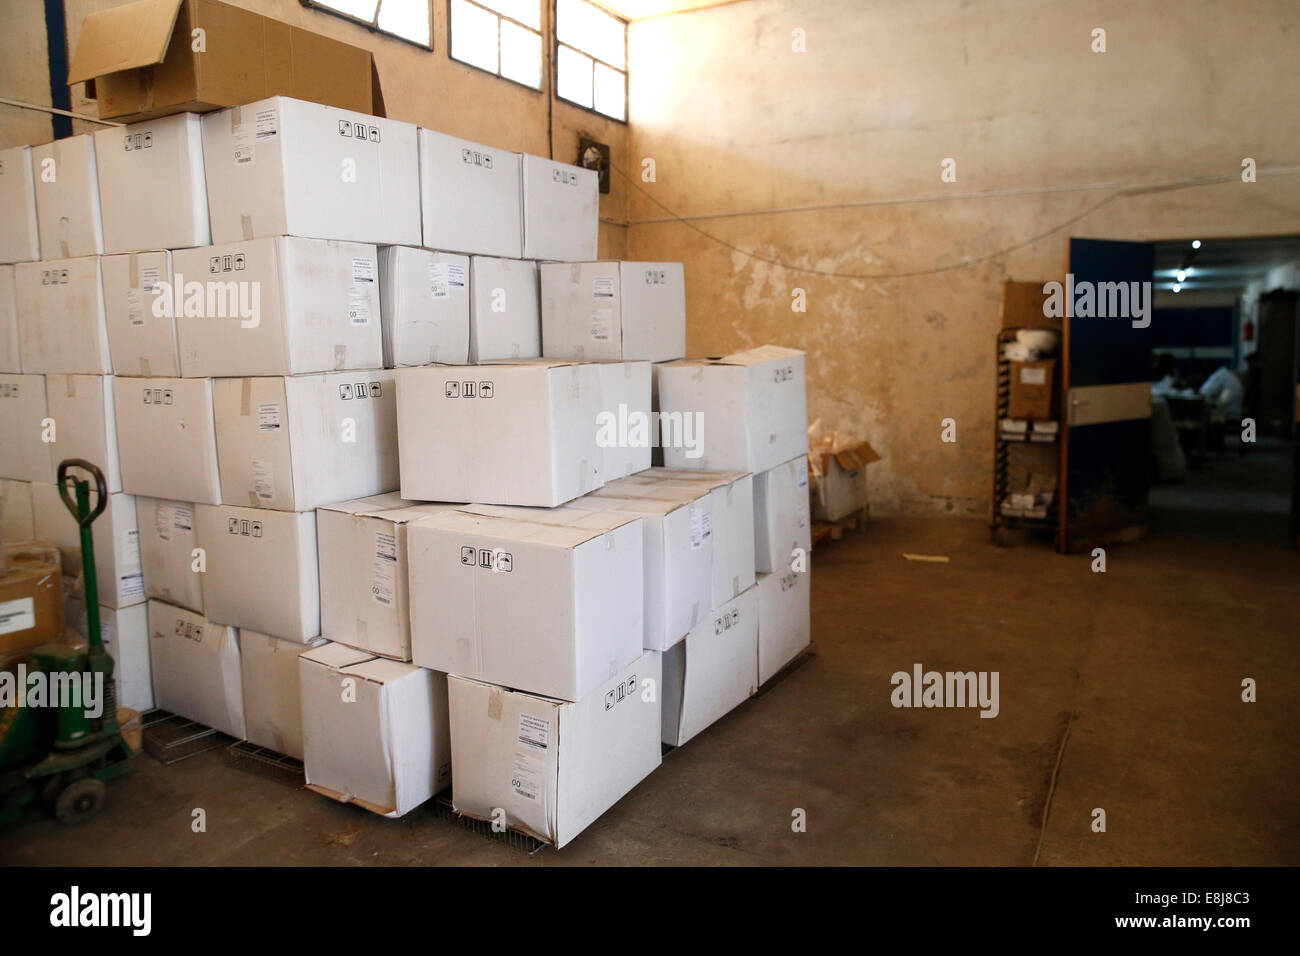 Brazzaville Hospital. Medical supplies warehouse. - Stock Image